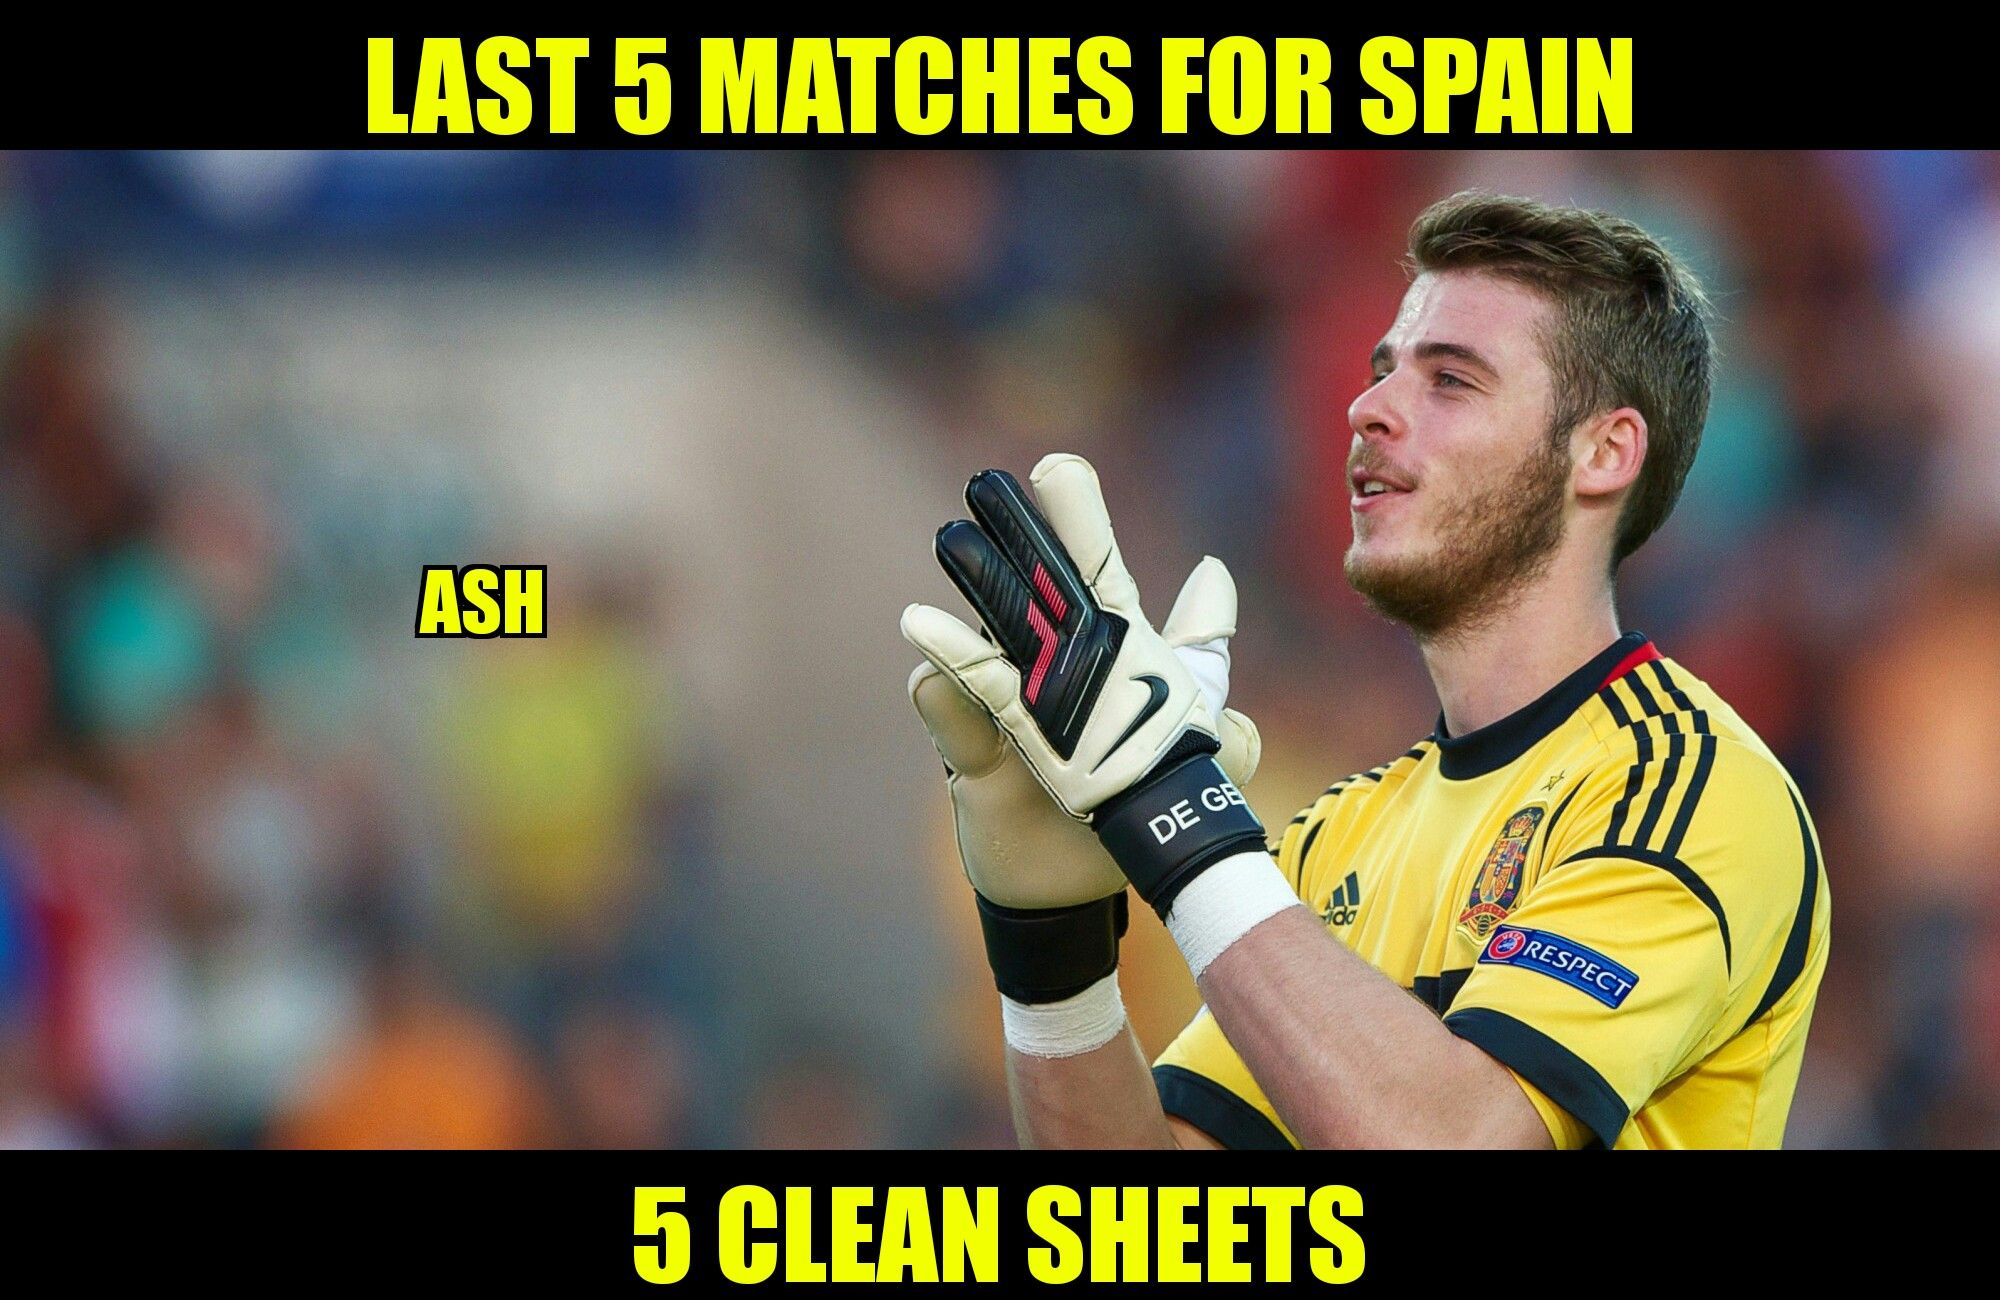 The perfect replacement for Casillas